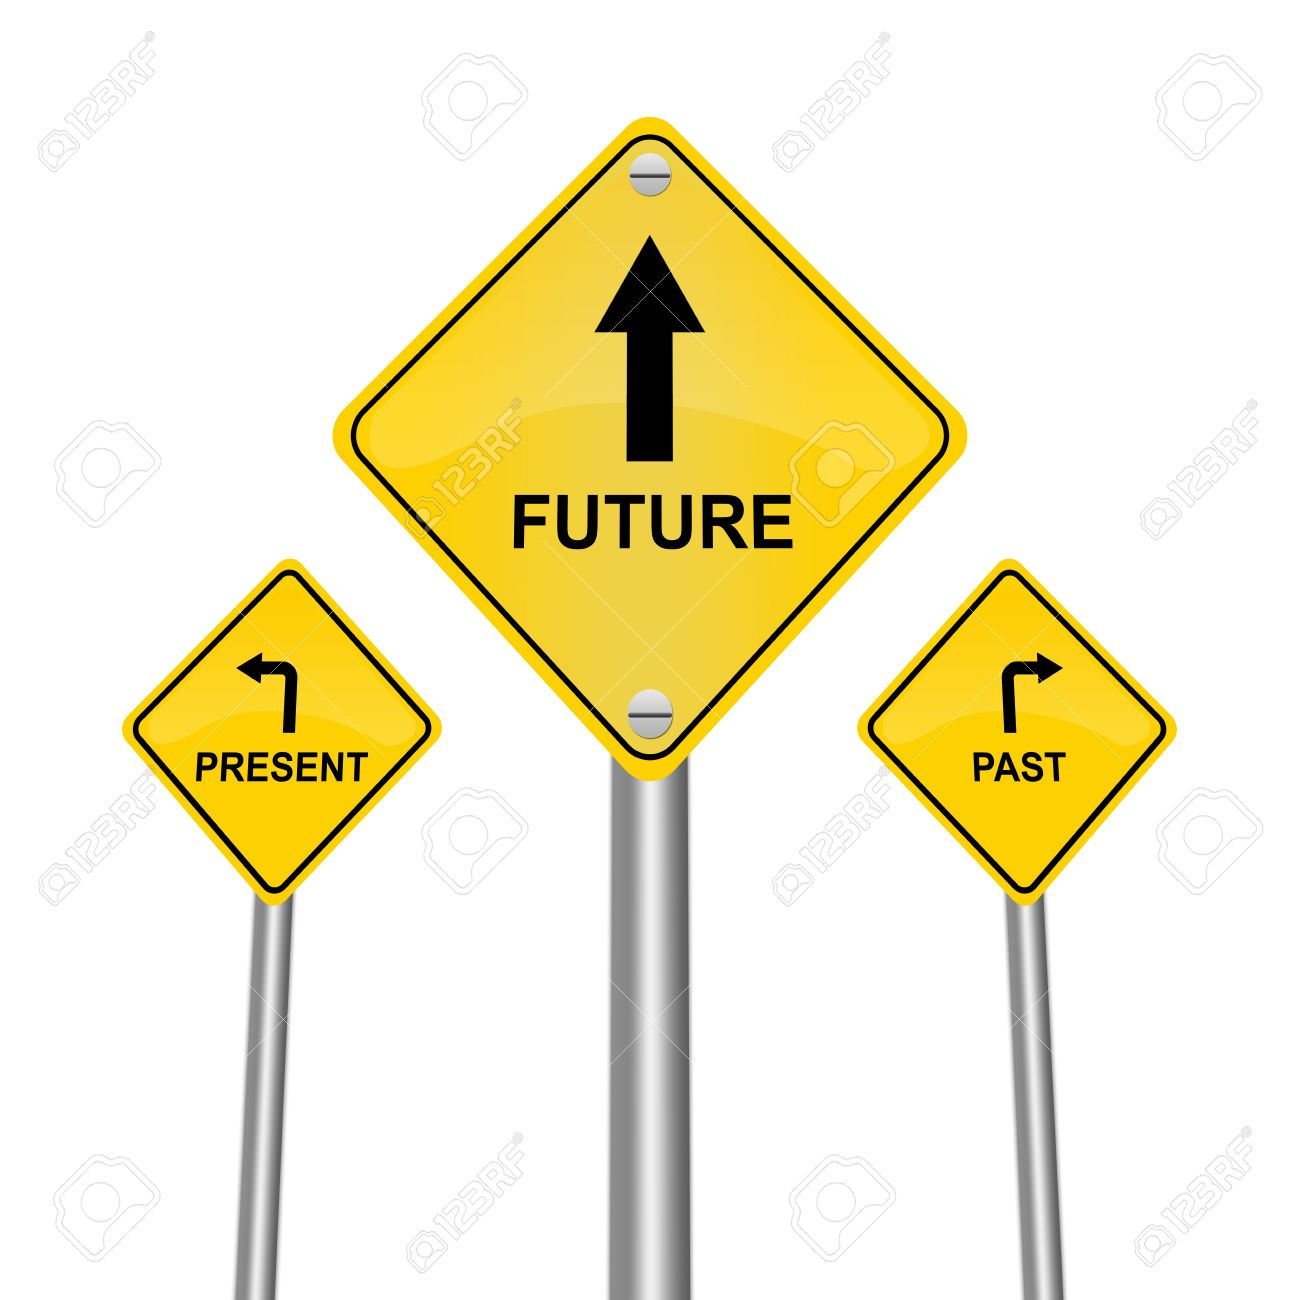 Yellow Street Sign Pointing to Future, Present and Past Isolated on White Background Stock Photo - 17509885